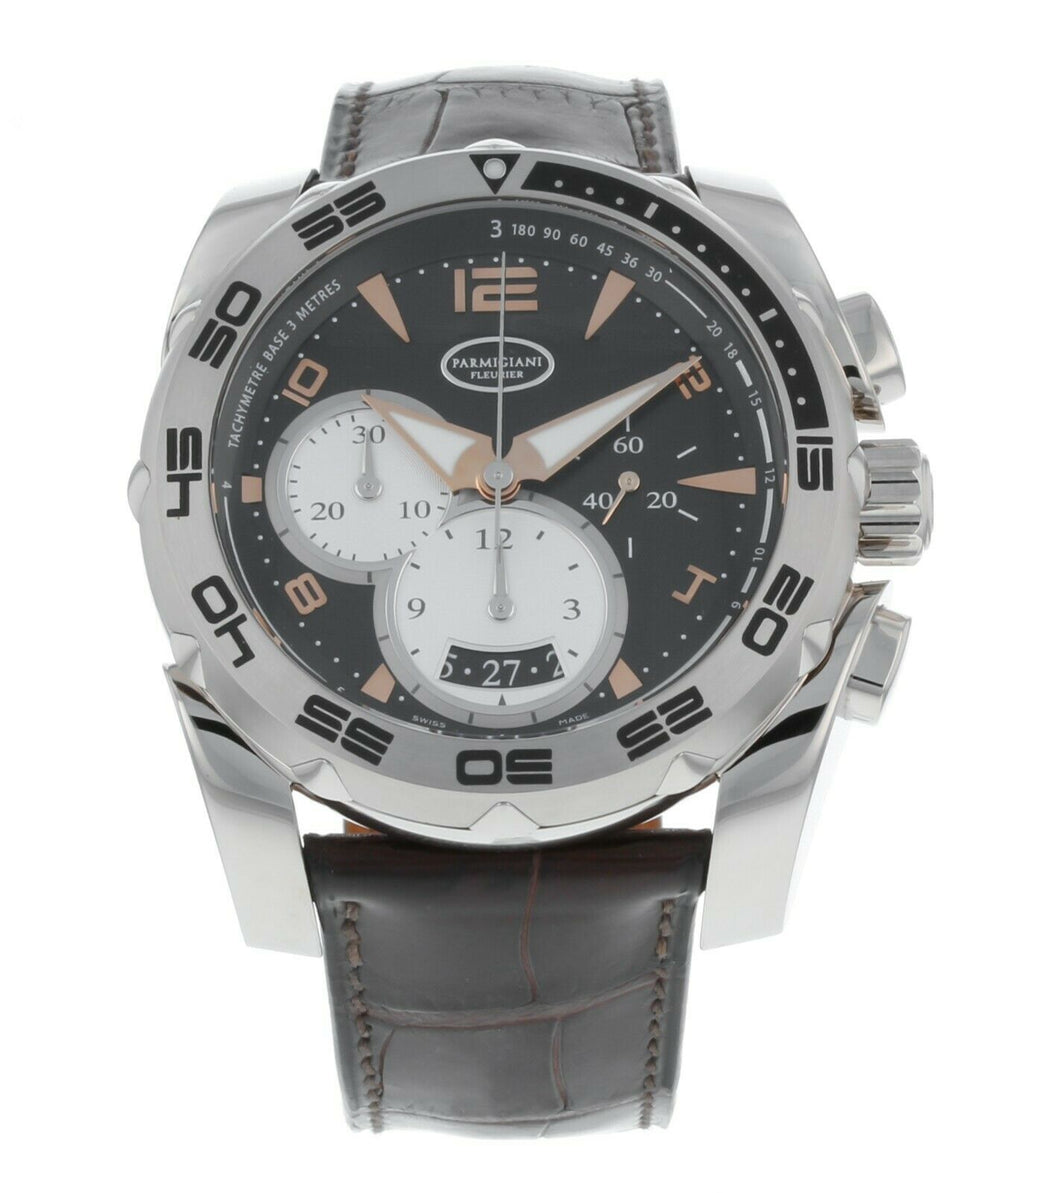 Parmigiani Fleurier Pershing 005 Chronograph Automatic 18k White Gold Mens Watch